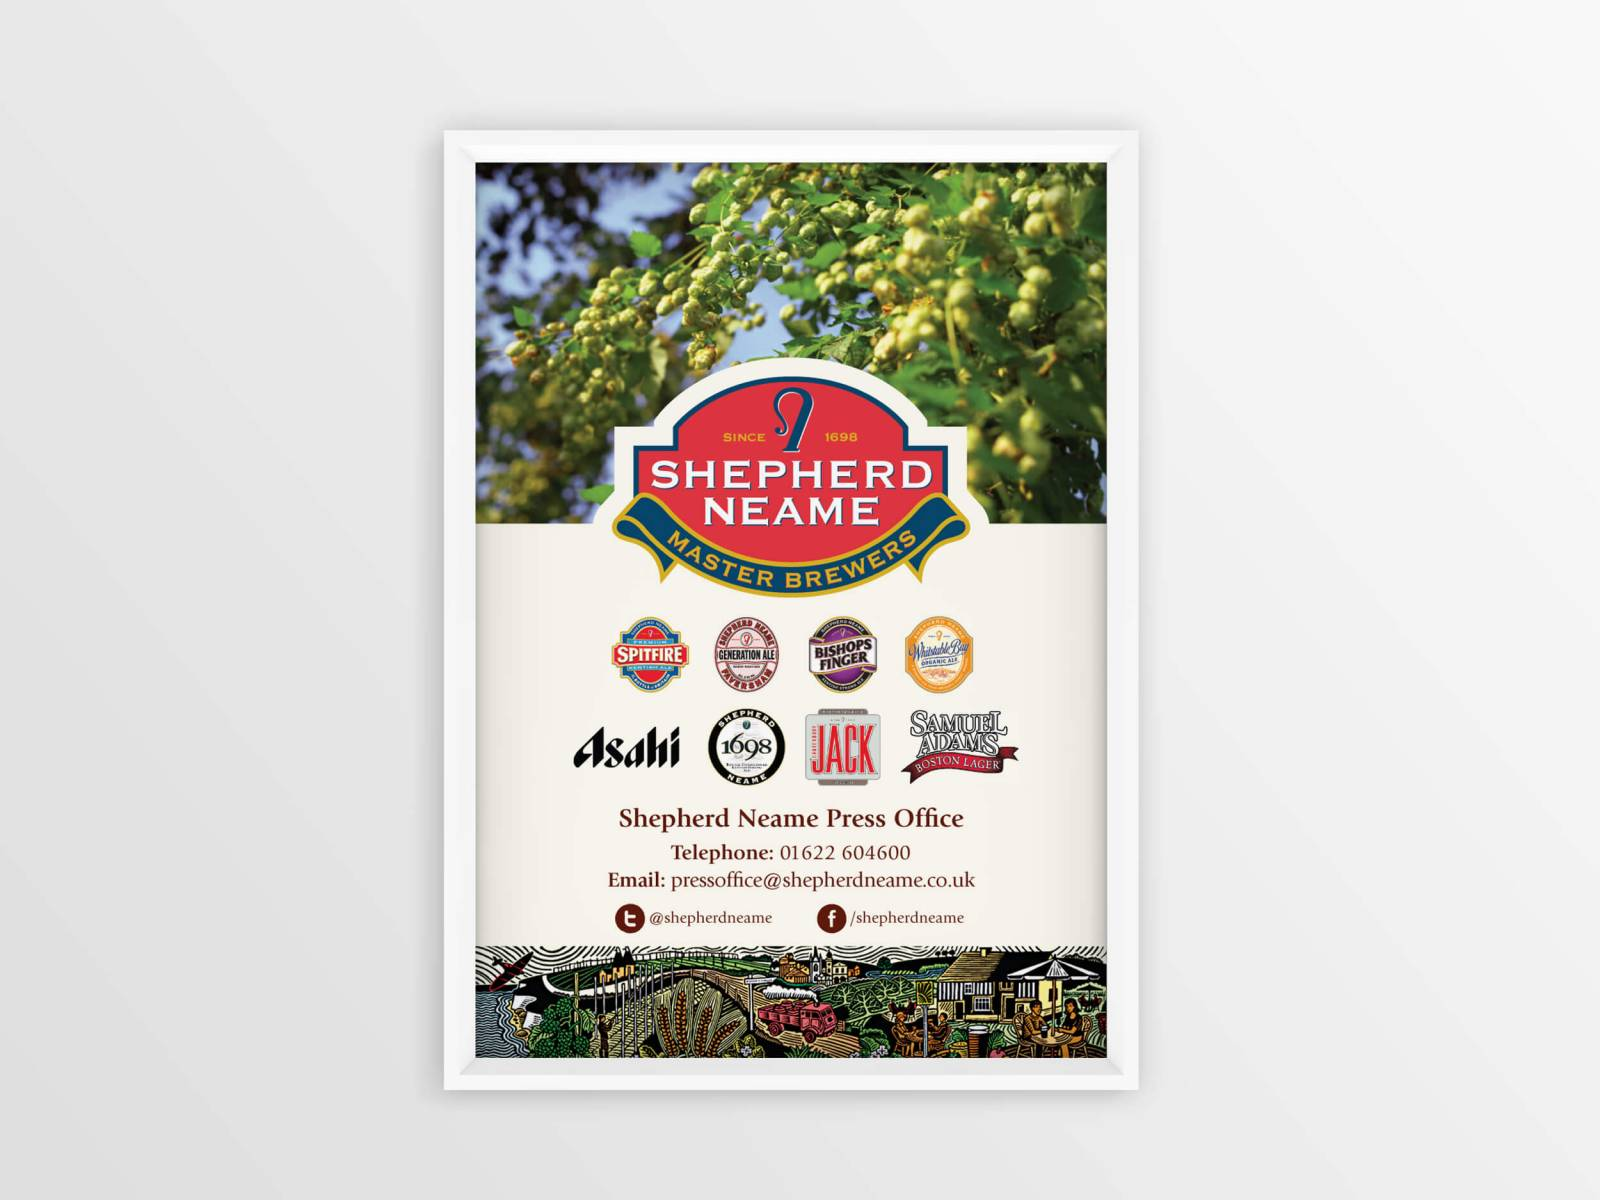 Shepherd-Neame-poster-3-design-agency-graphic-design-canterbury.jpg